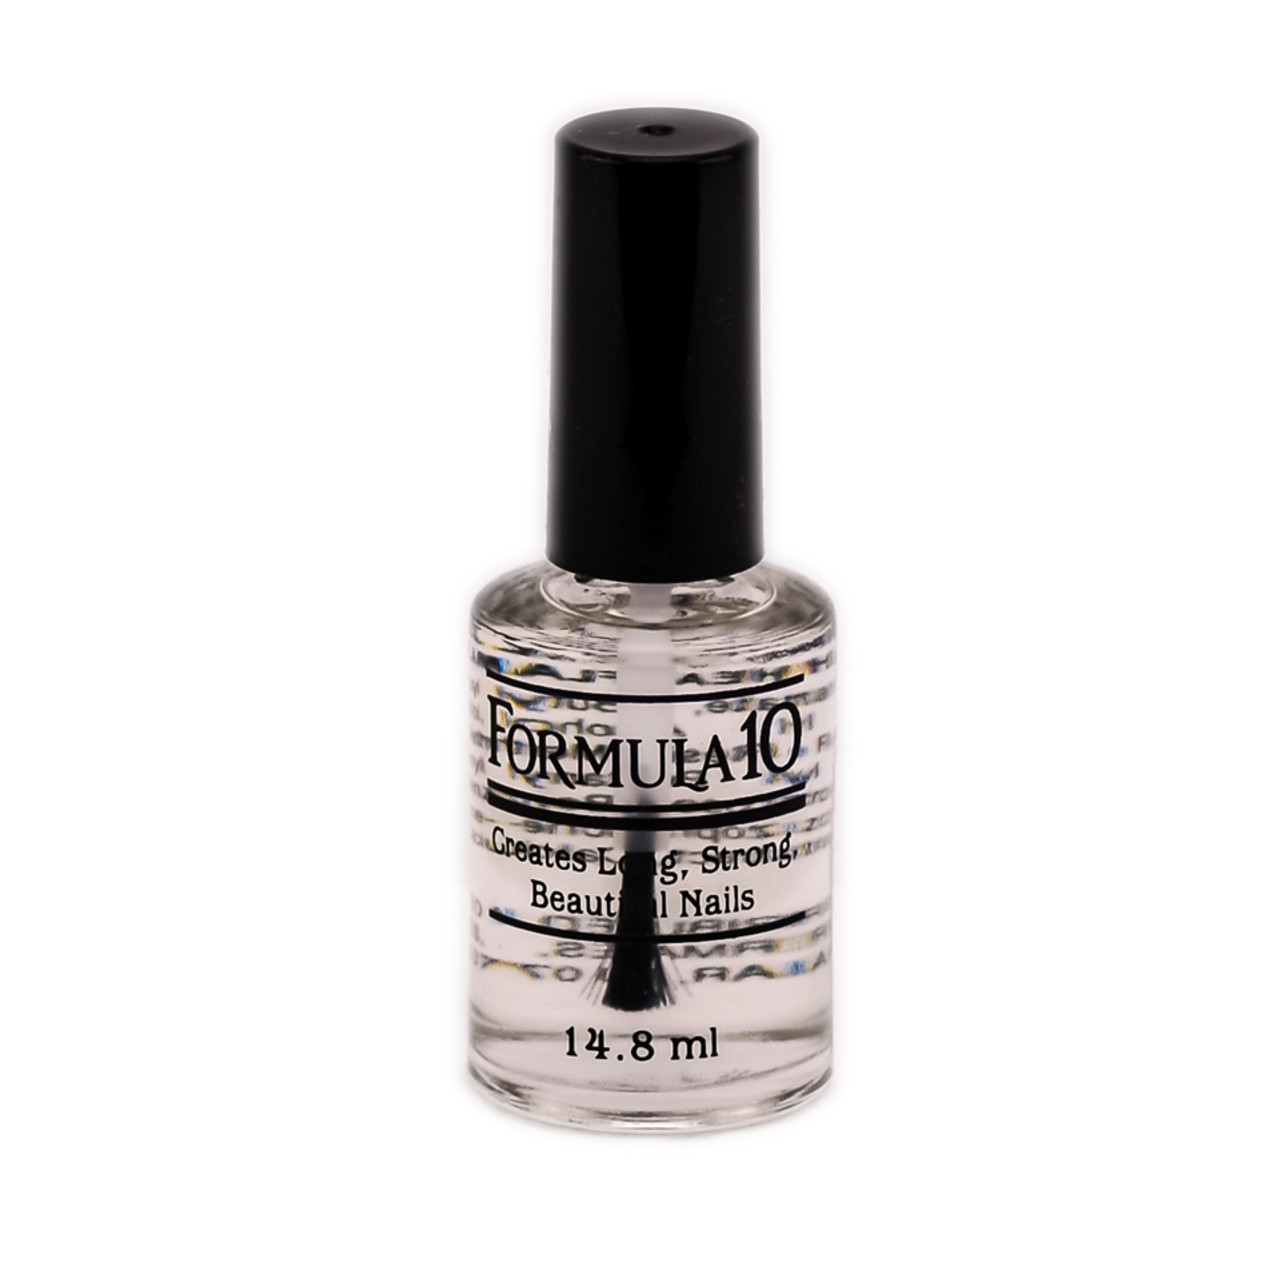 Formula 10 New & Improved Nail Hardener - SleekShop.com (formerly ...